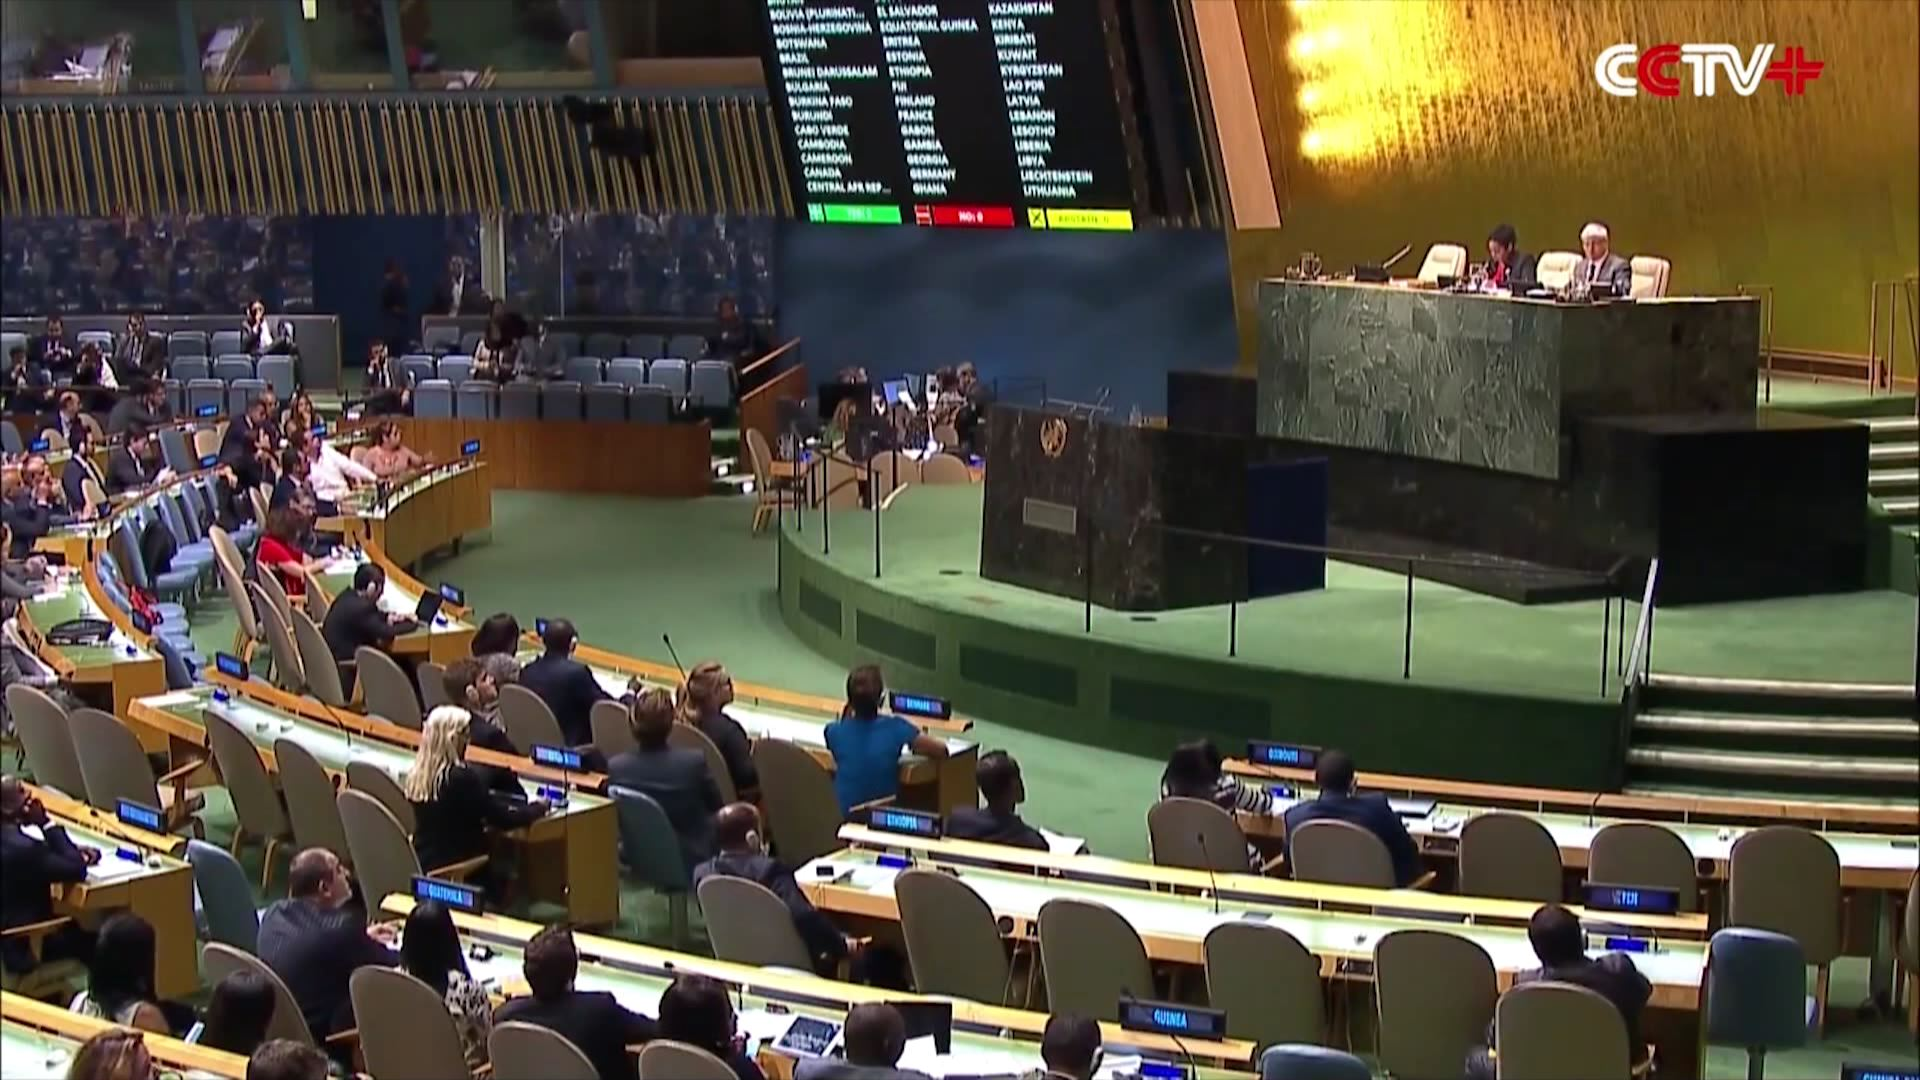 united nations proposal Many un agencies, programs, and missions receive crucial funding from the united states president trump's budget proposal could jeopardize their work.